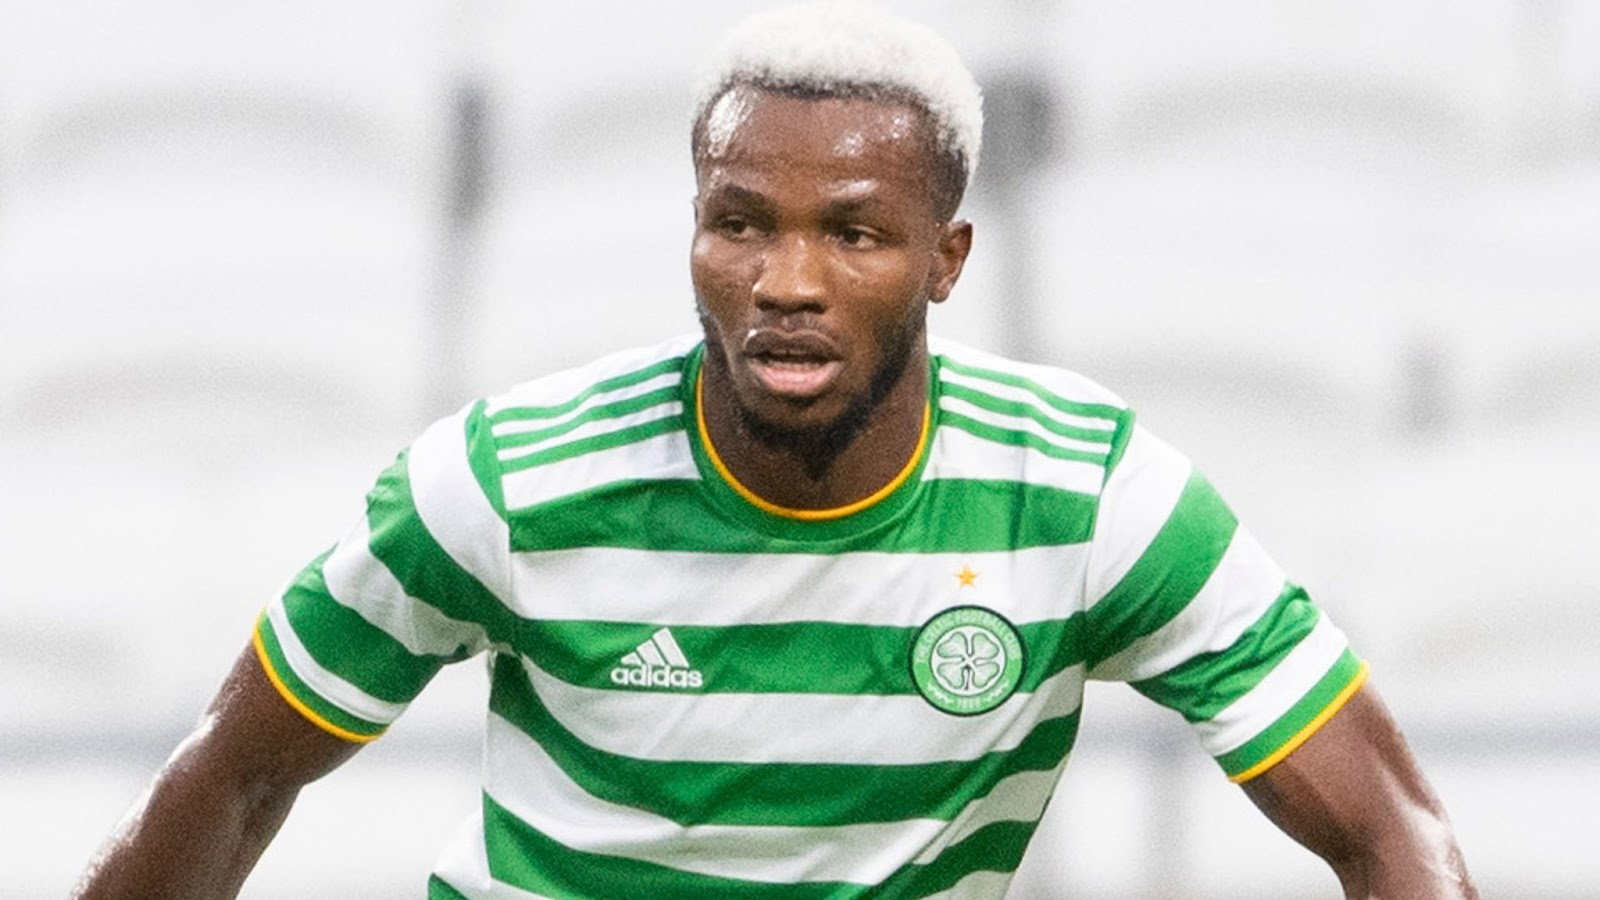 SPFL new crisis as Celtic man commits foul